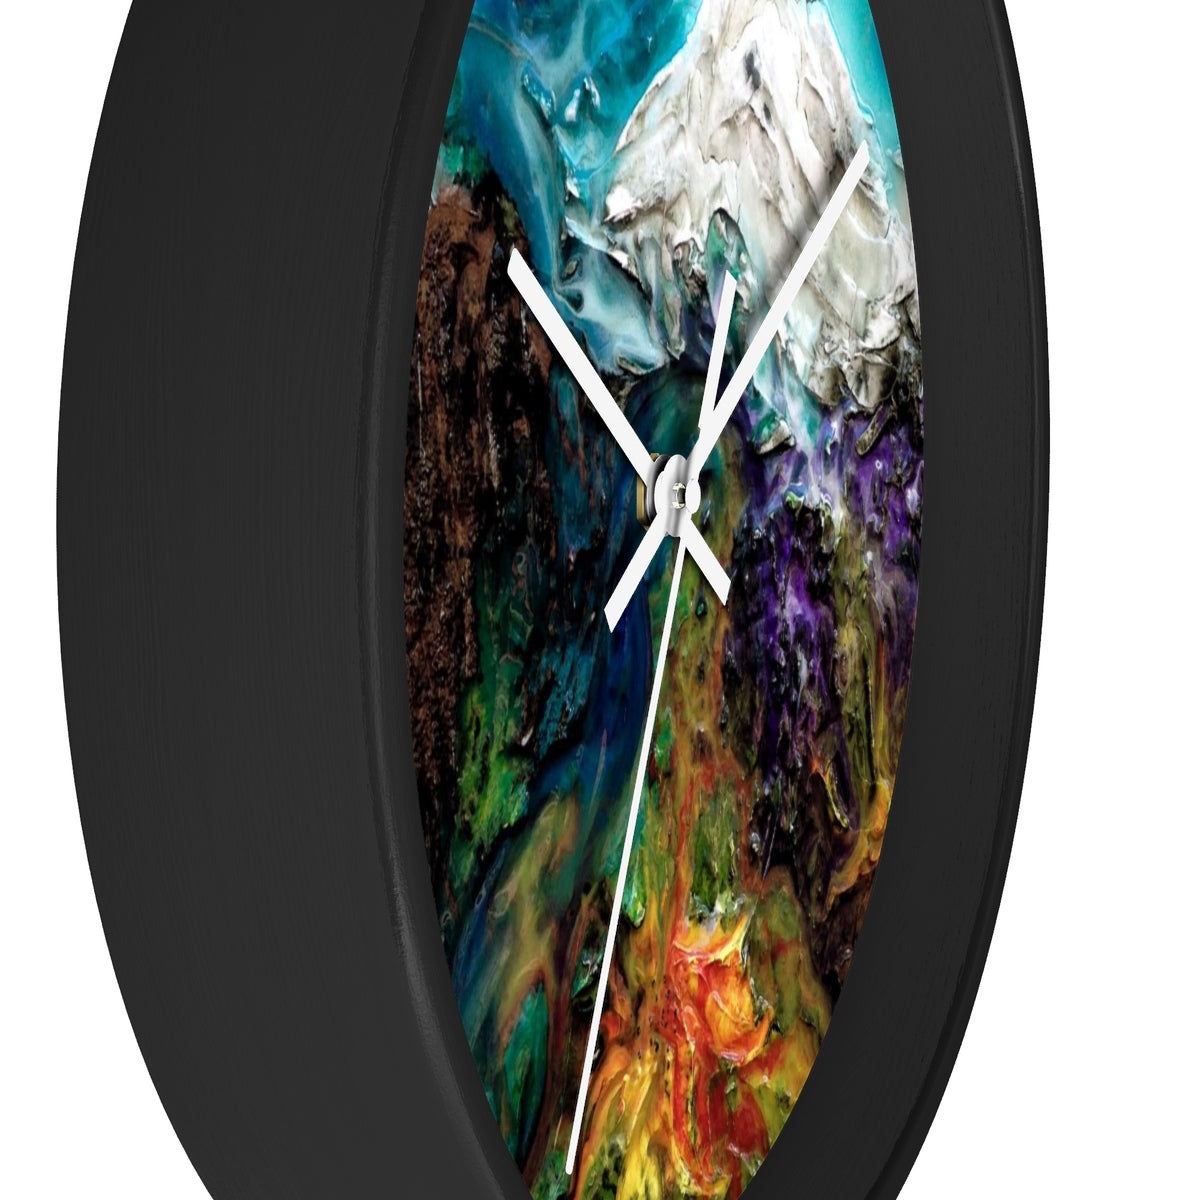 Wall Clock - 'Hood River'